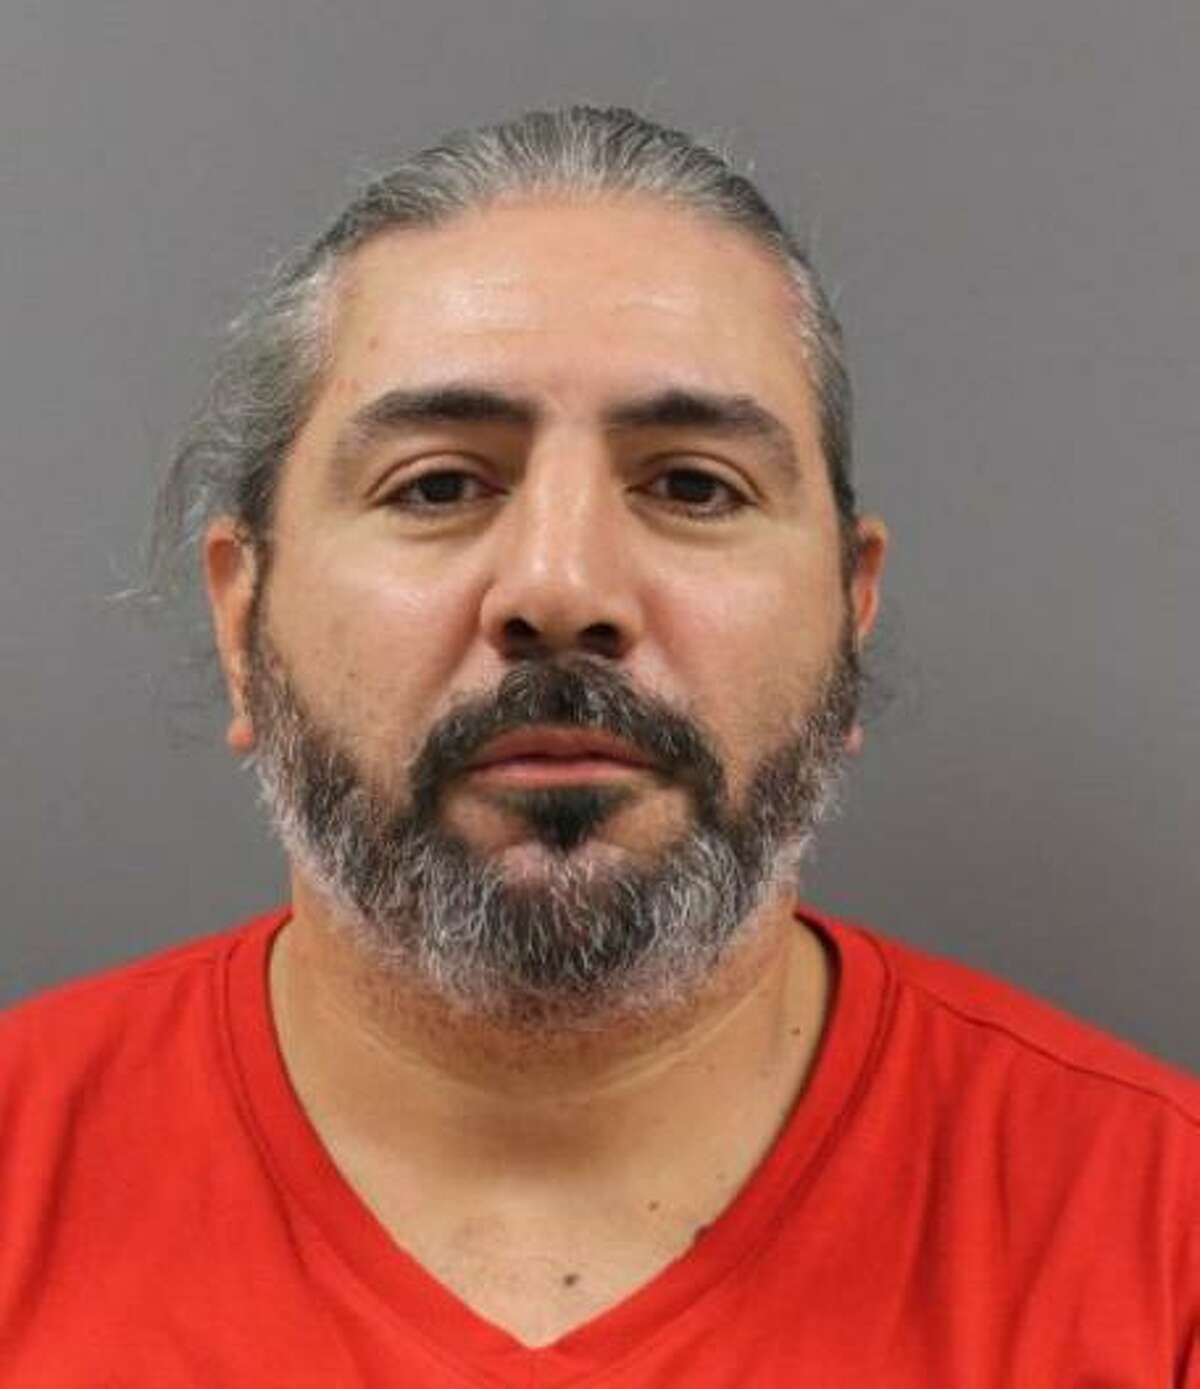 Henry Mendez, 45, was taken into custody and charged with possession of cocaine, possession of fentanyl, possession of more than half an ounce of cocaine with intent to distribute, possession of fentanyl with intent to distribute, operating a drug factory and possession of drug paraphernalia. Police said Mendez is the owner of Bro's Mini Mart on Spruce Street.